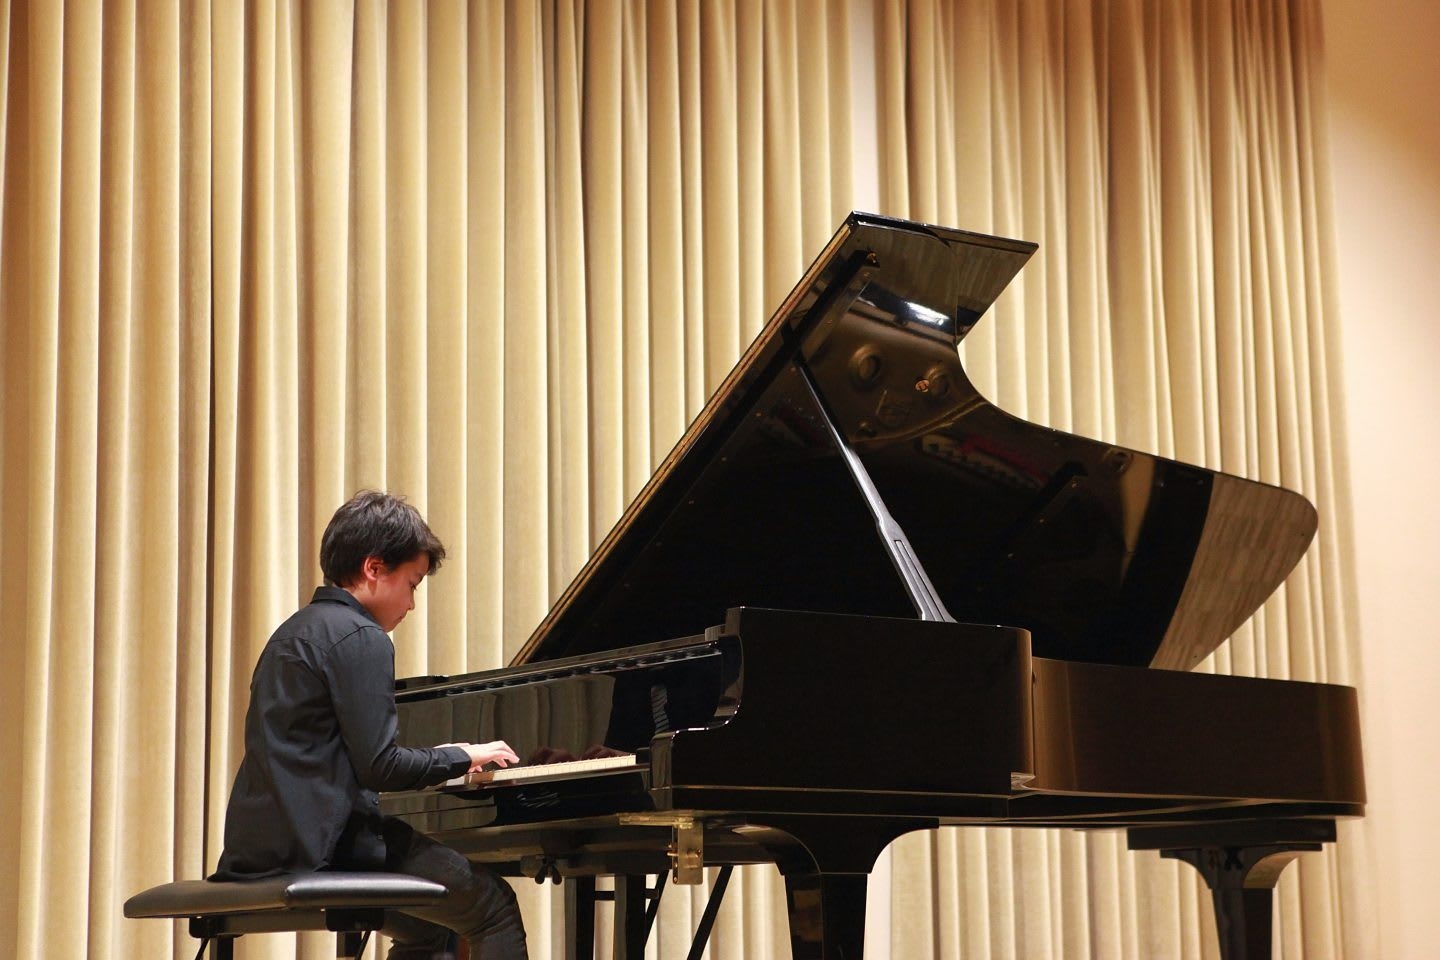 Young boy is playing grand piano at the school concert, child, learning, instrument, recital, music